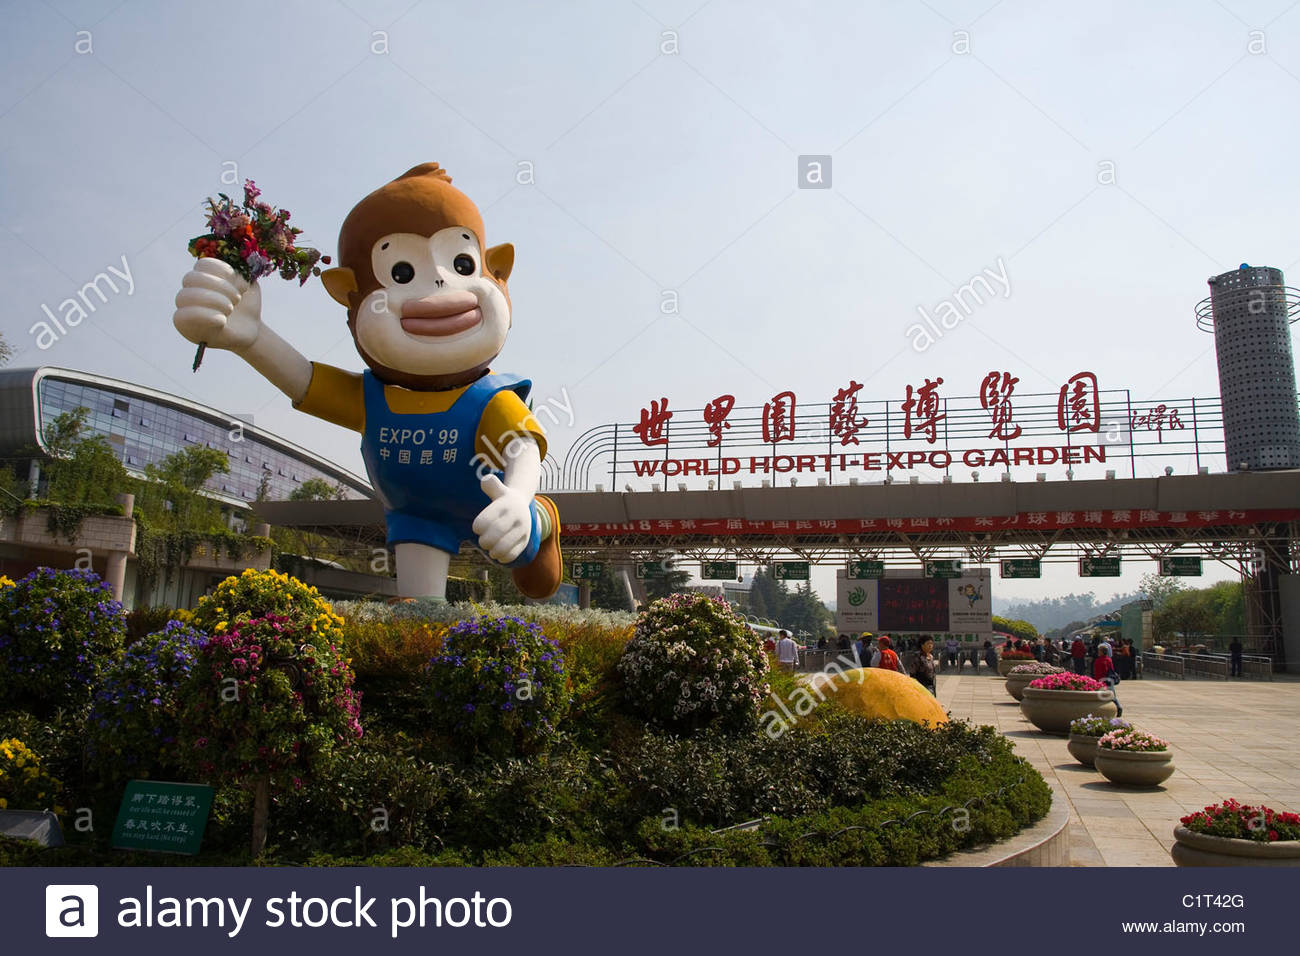 World Horticultural Expo Garden, Kunming, Yunnan, China Stock Photo